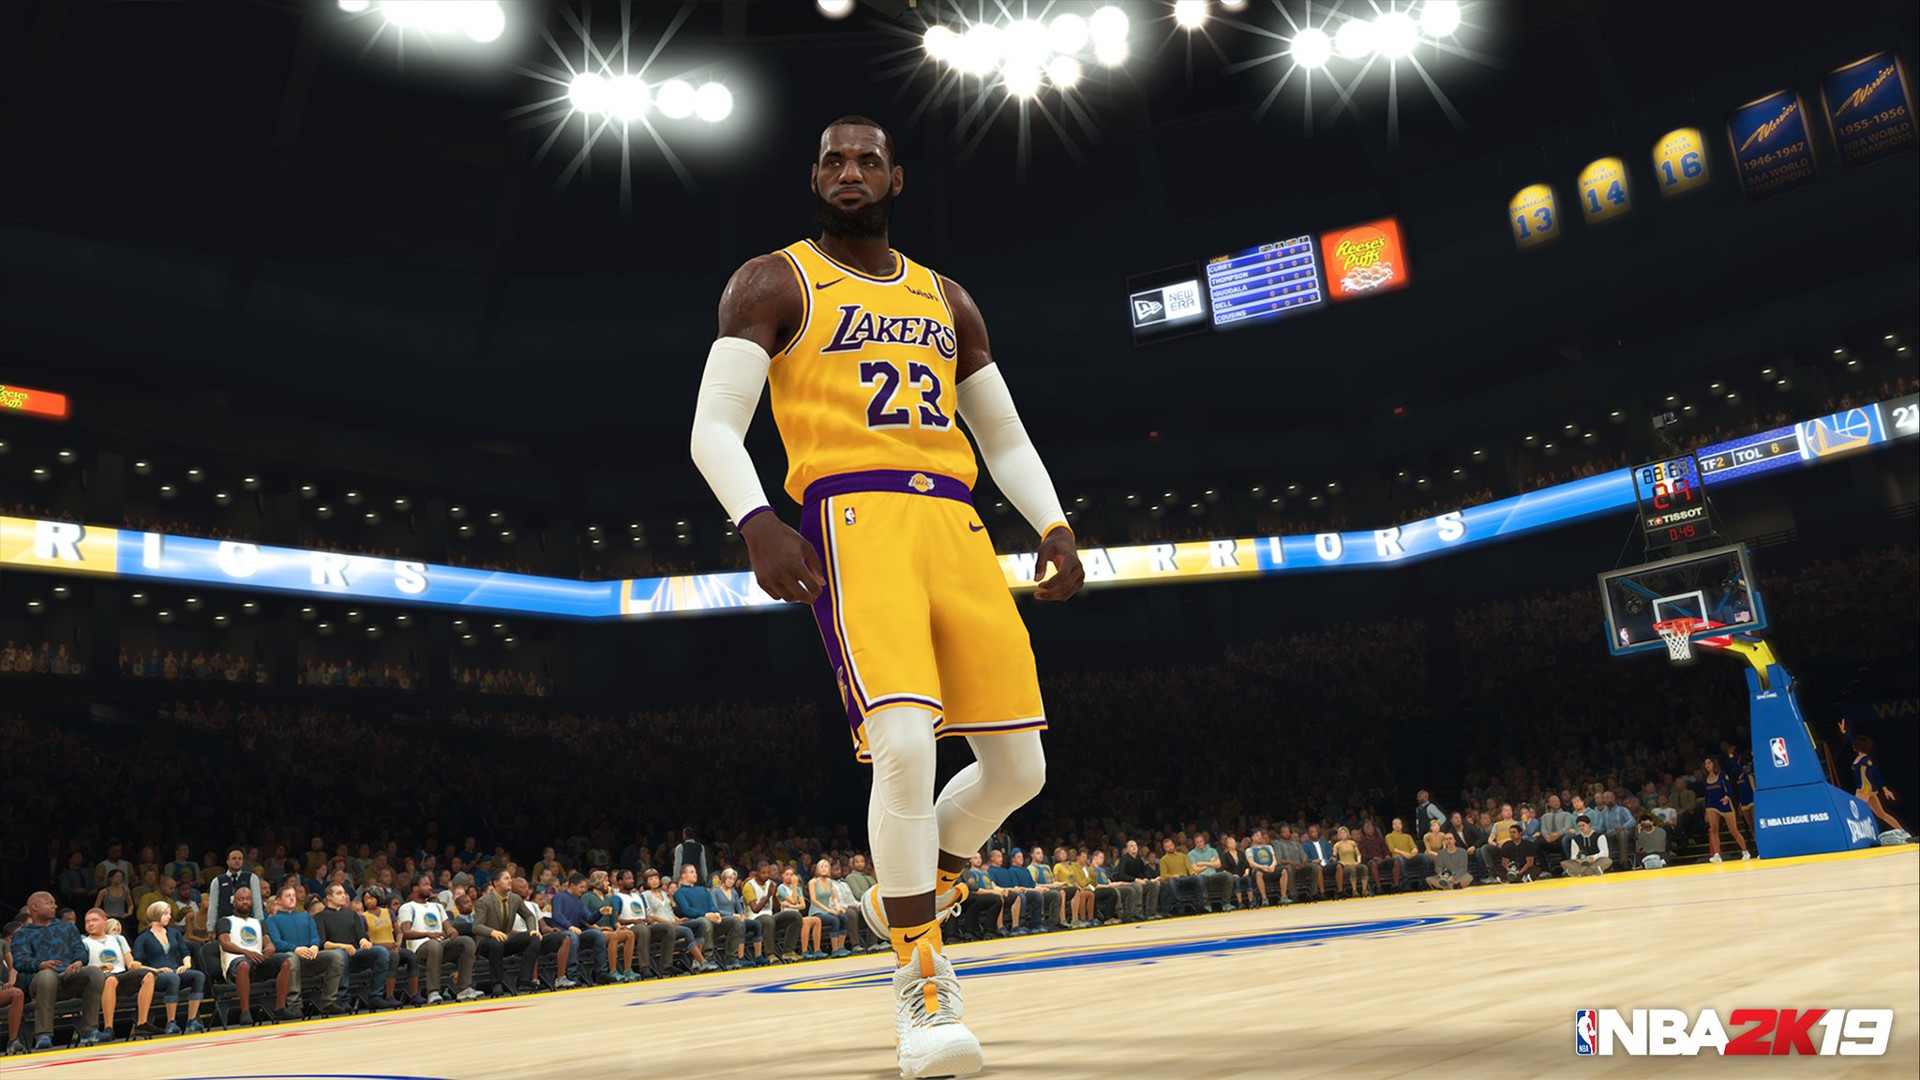 NBA-2K19-LeBron-James-Lakers-FTR-080718.jpg